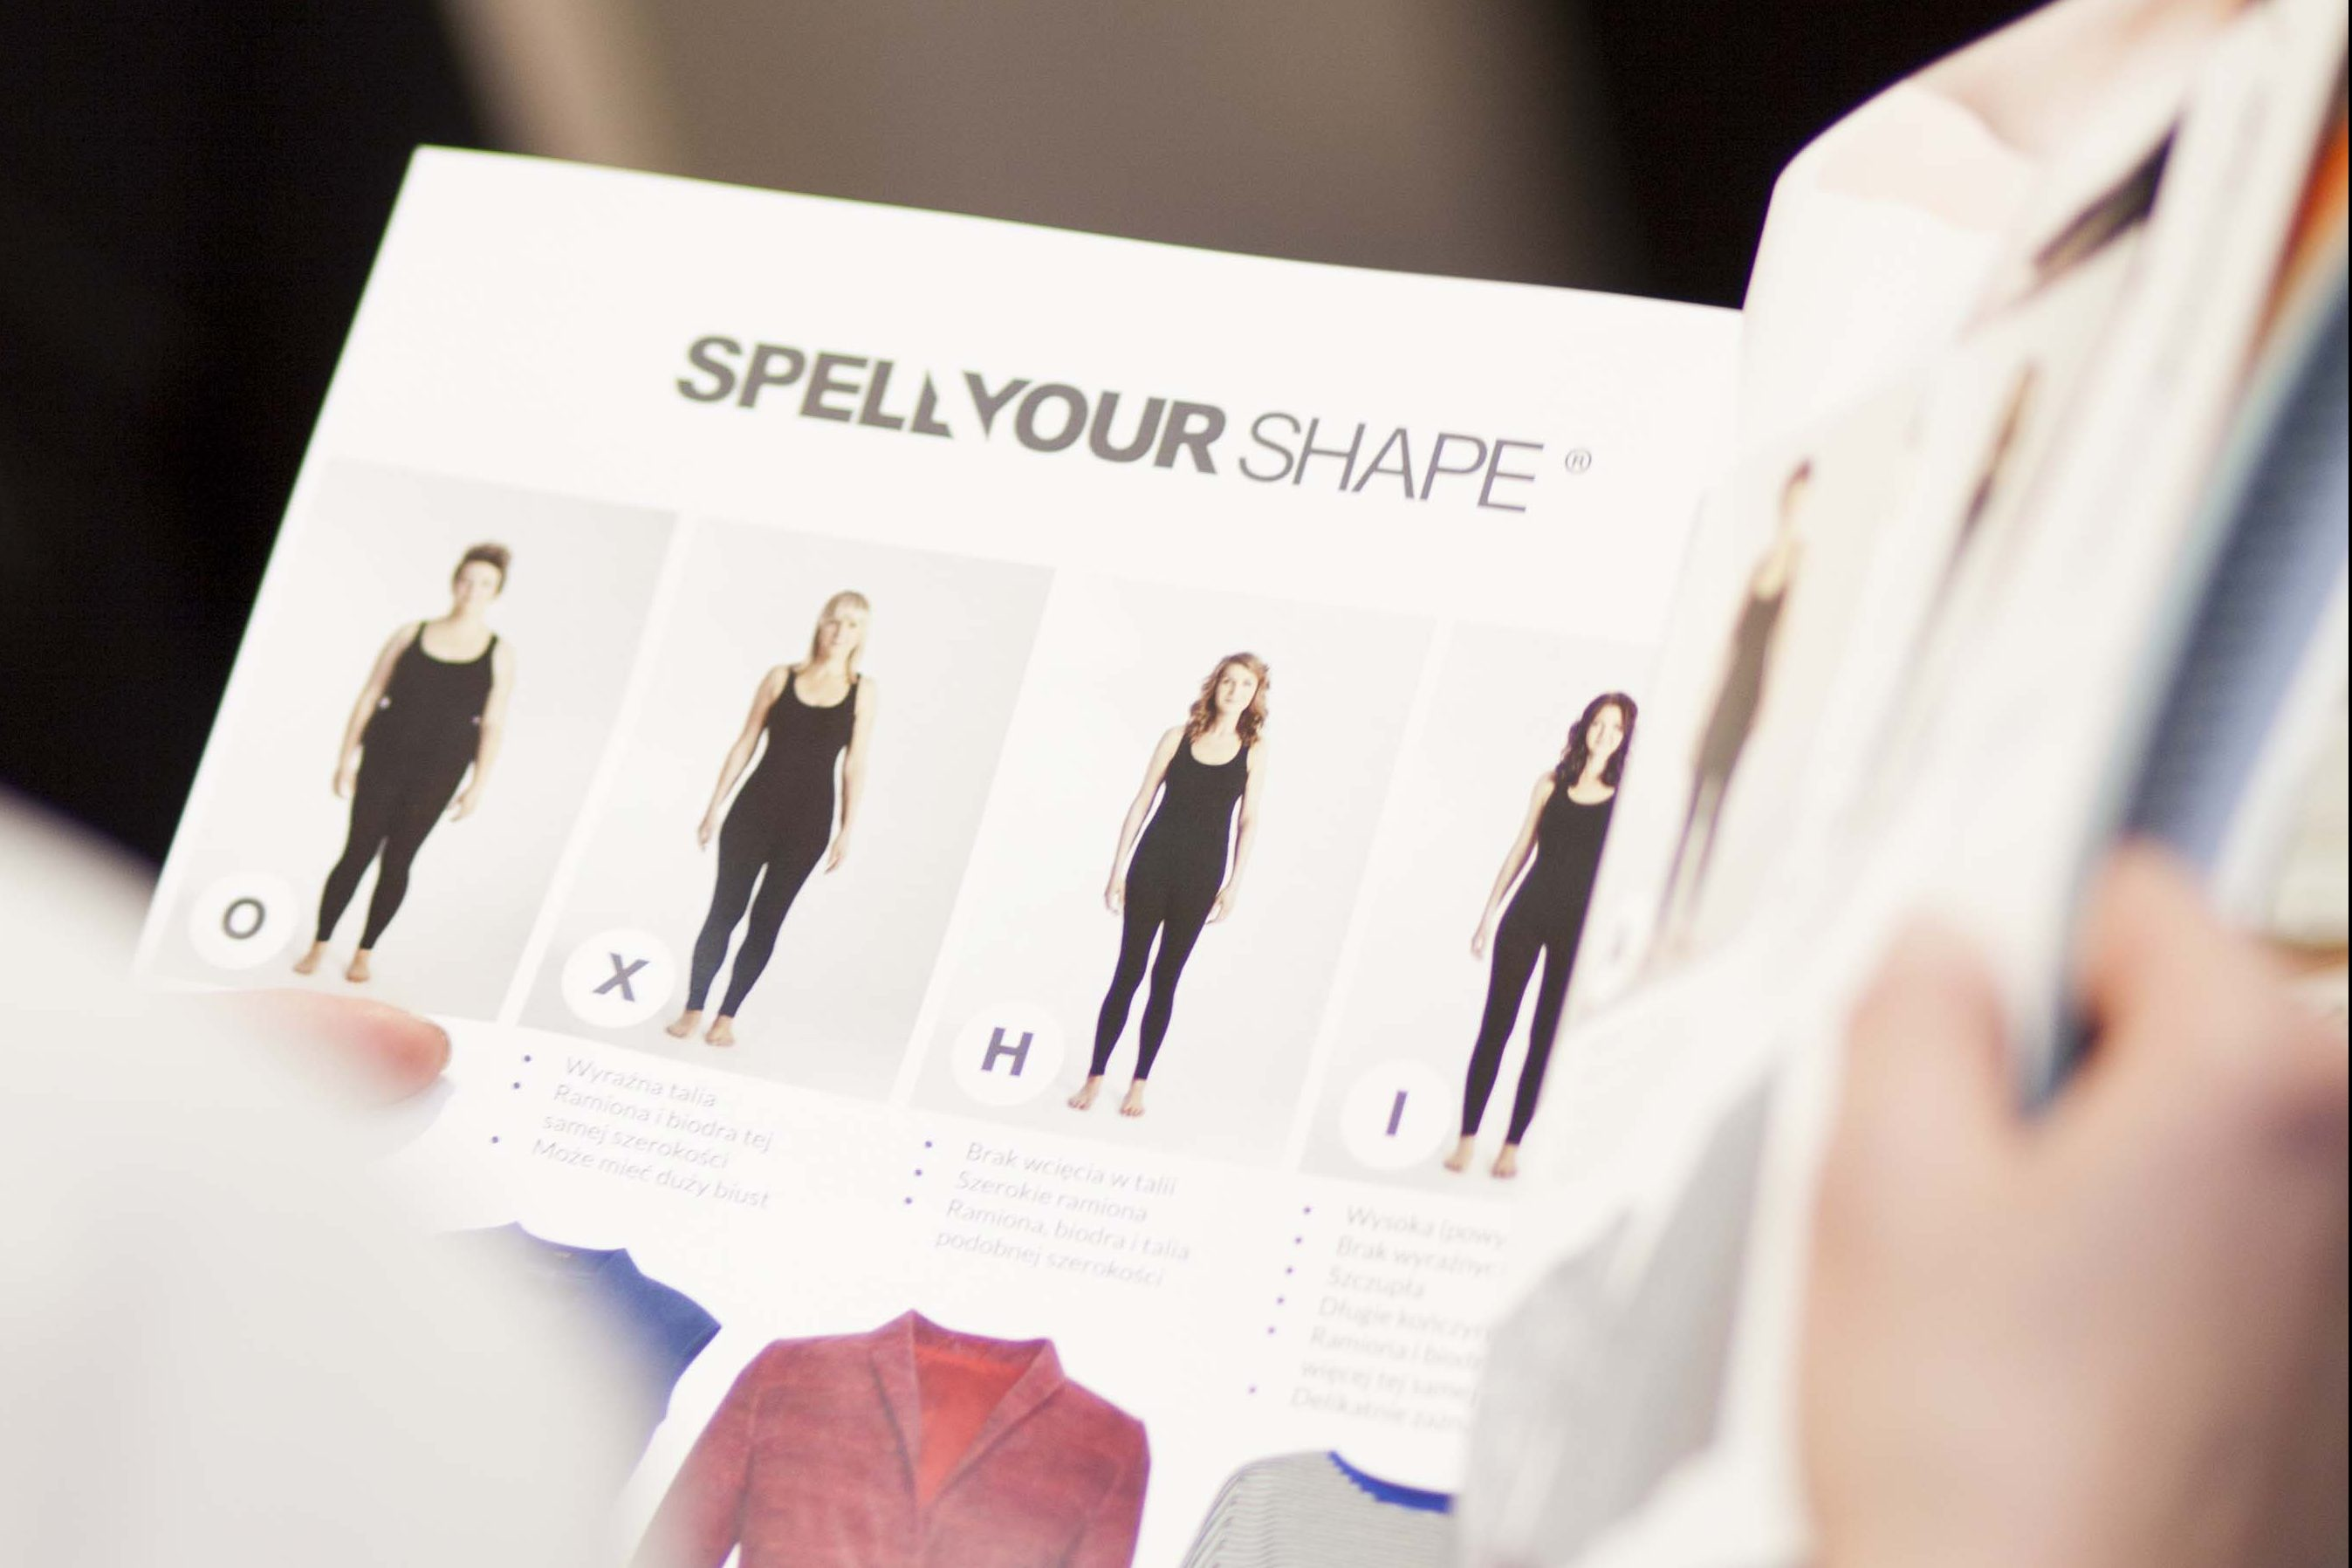 SPELL YOUR SHAPE